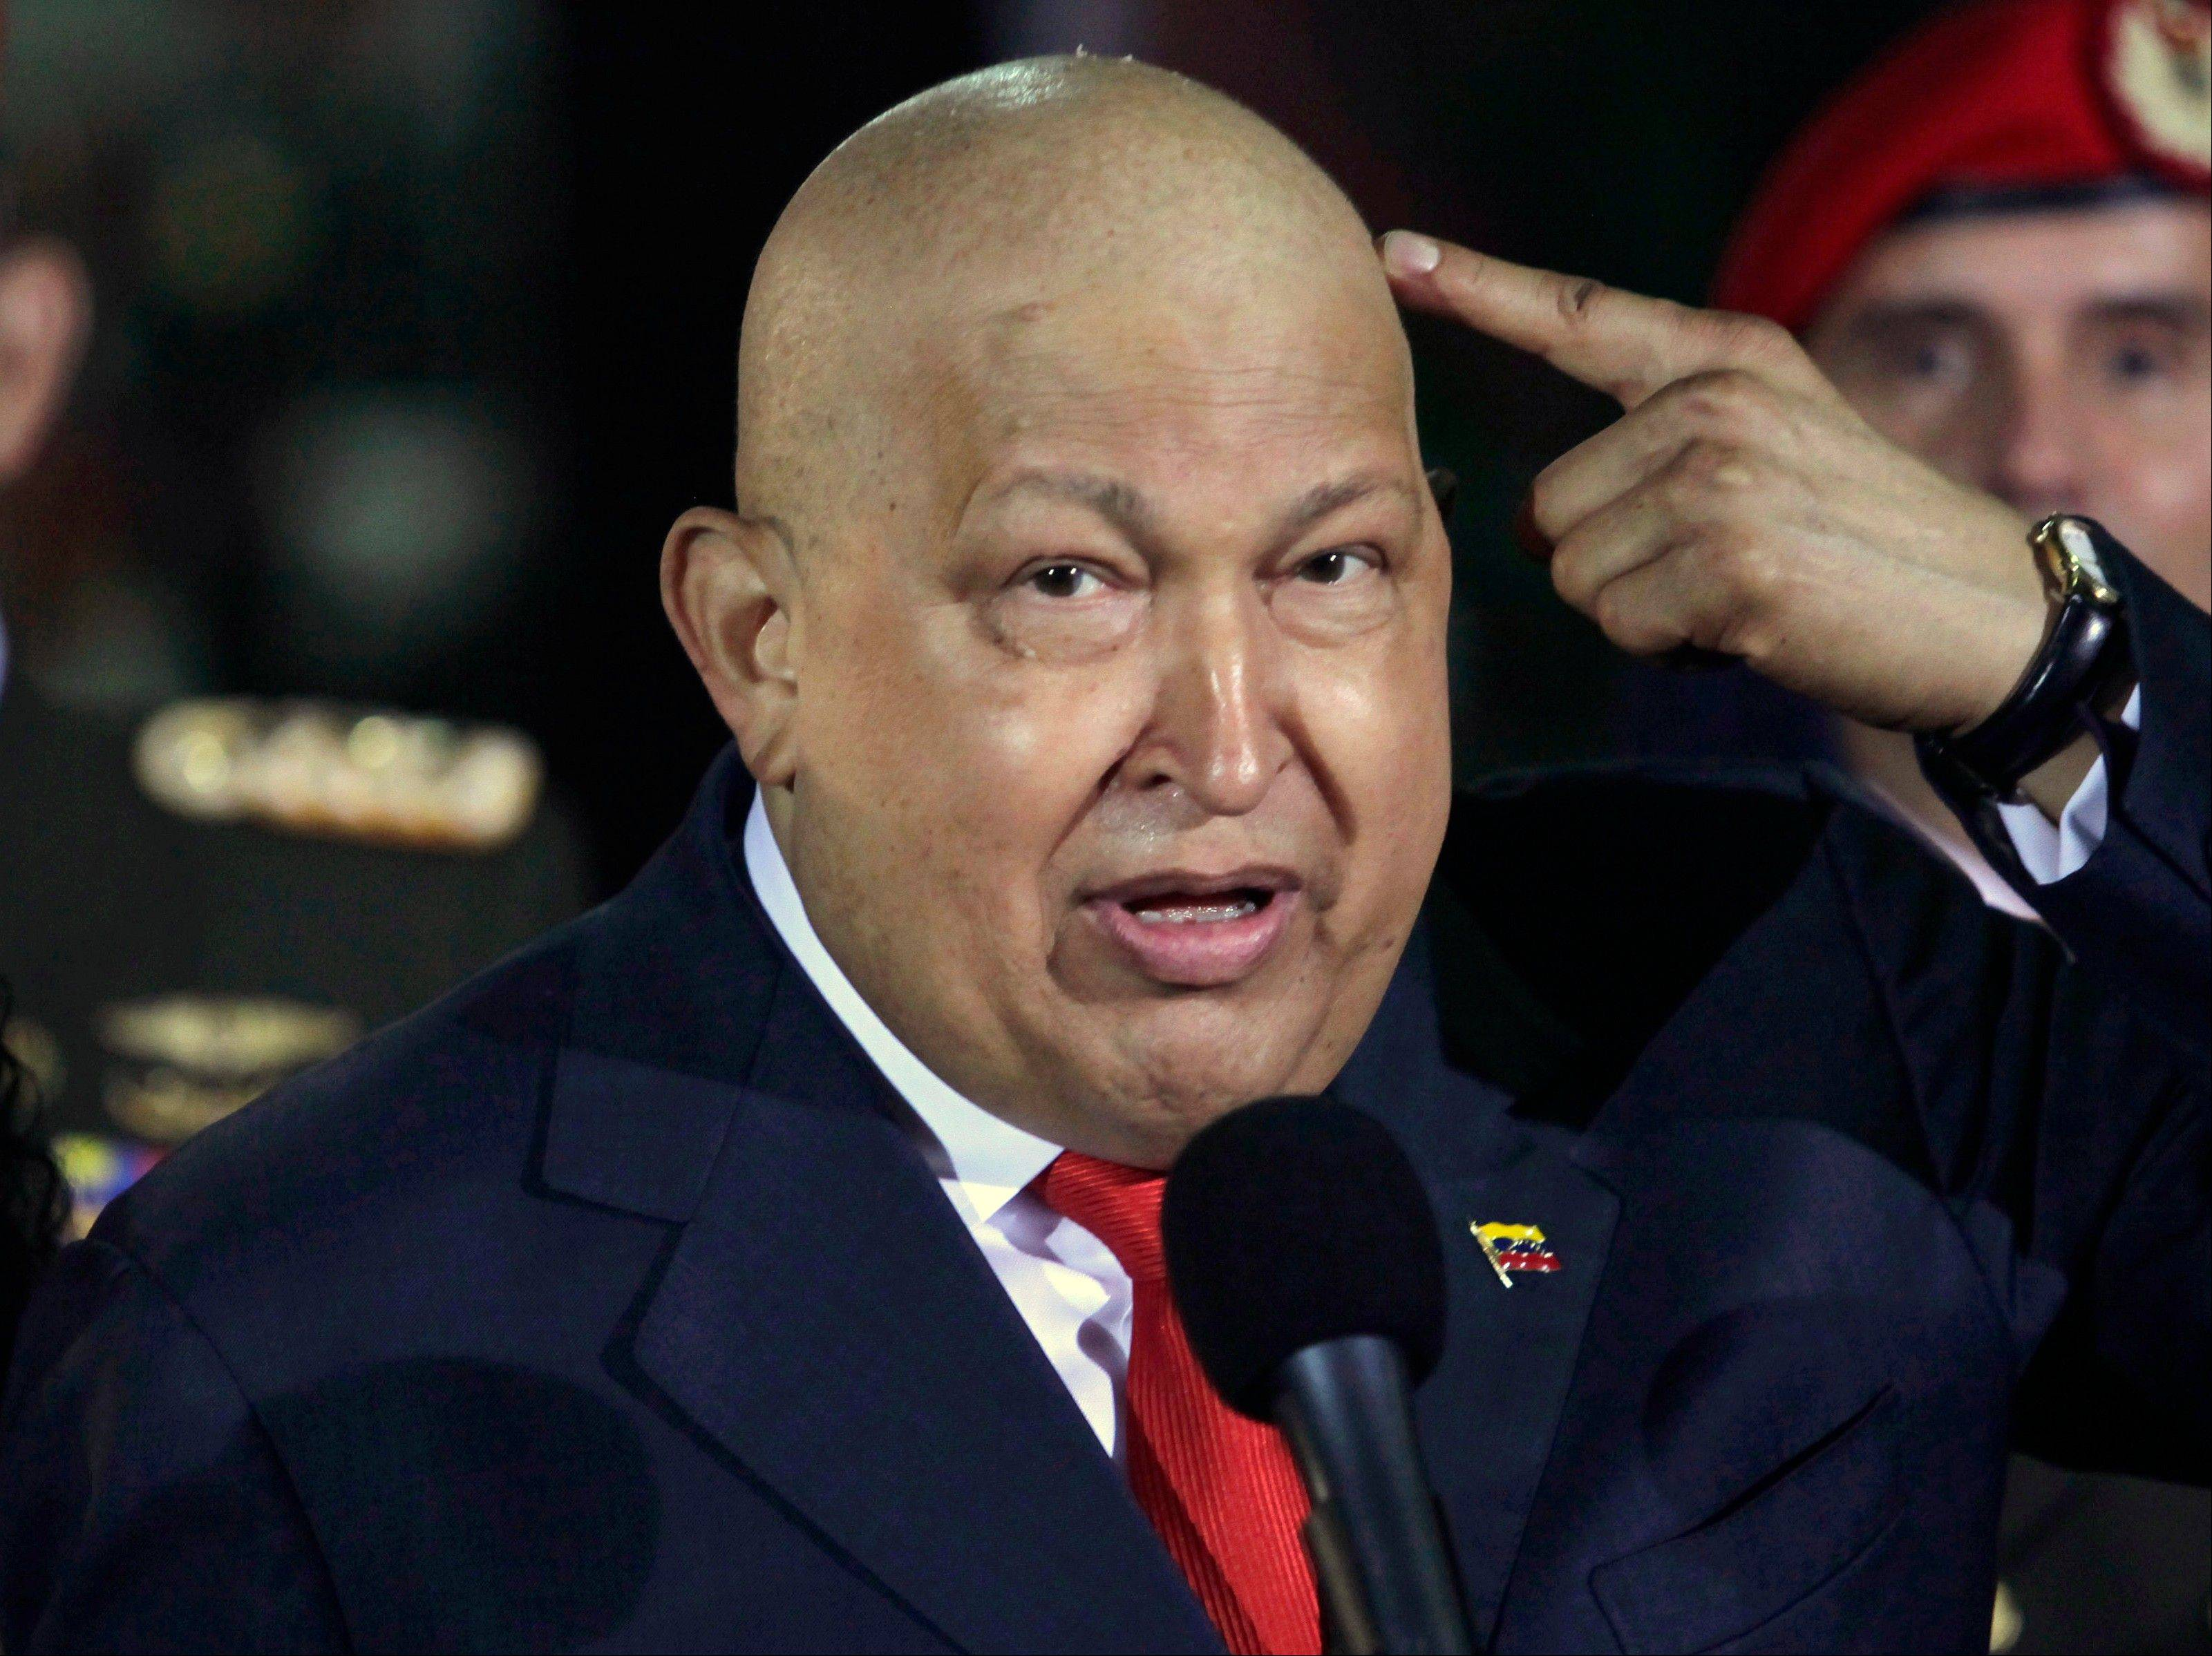 Venezuela's Chavez dies, officials call for unity